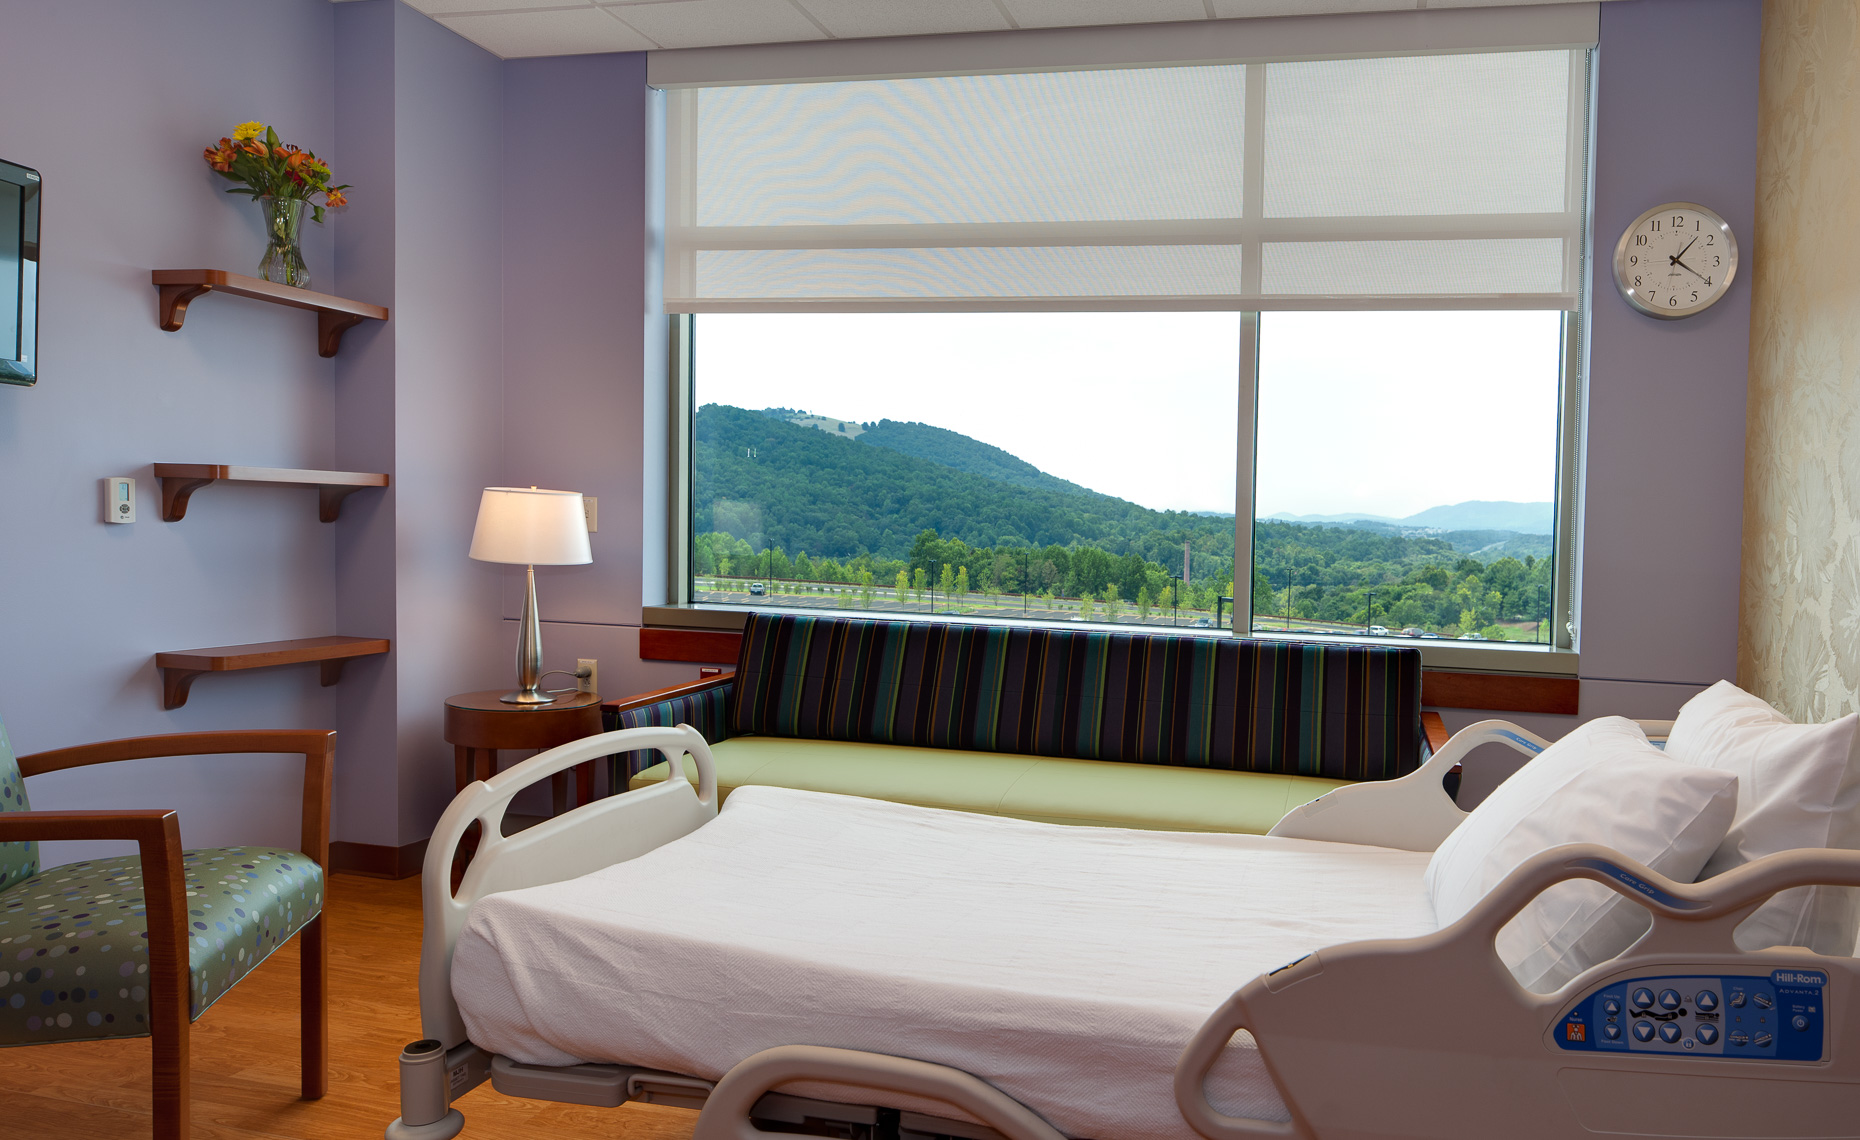 Virginia Hamrick Photography - Patient Room with Mountain View - Martha Jefferson